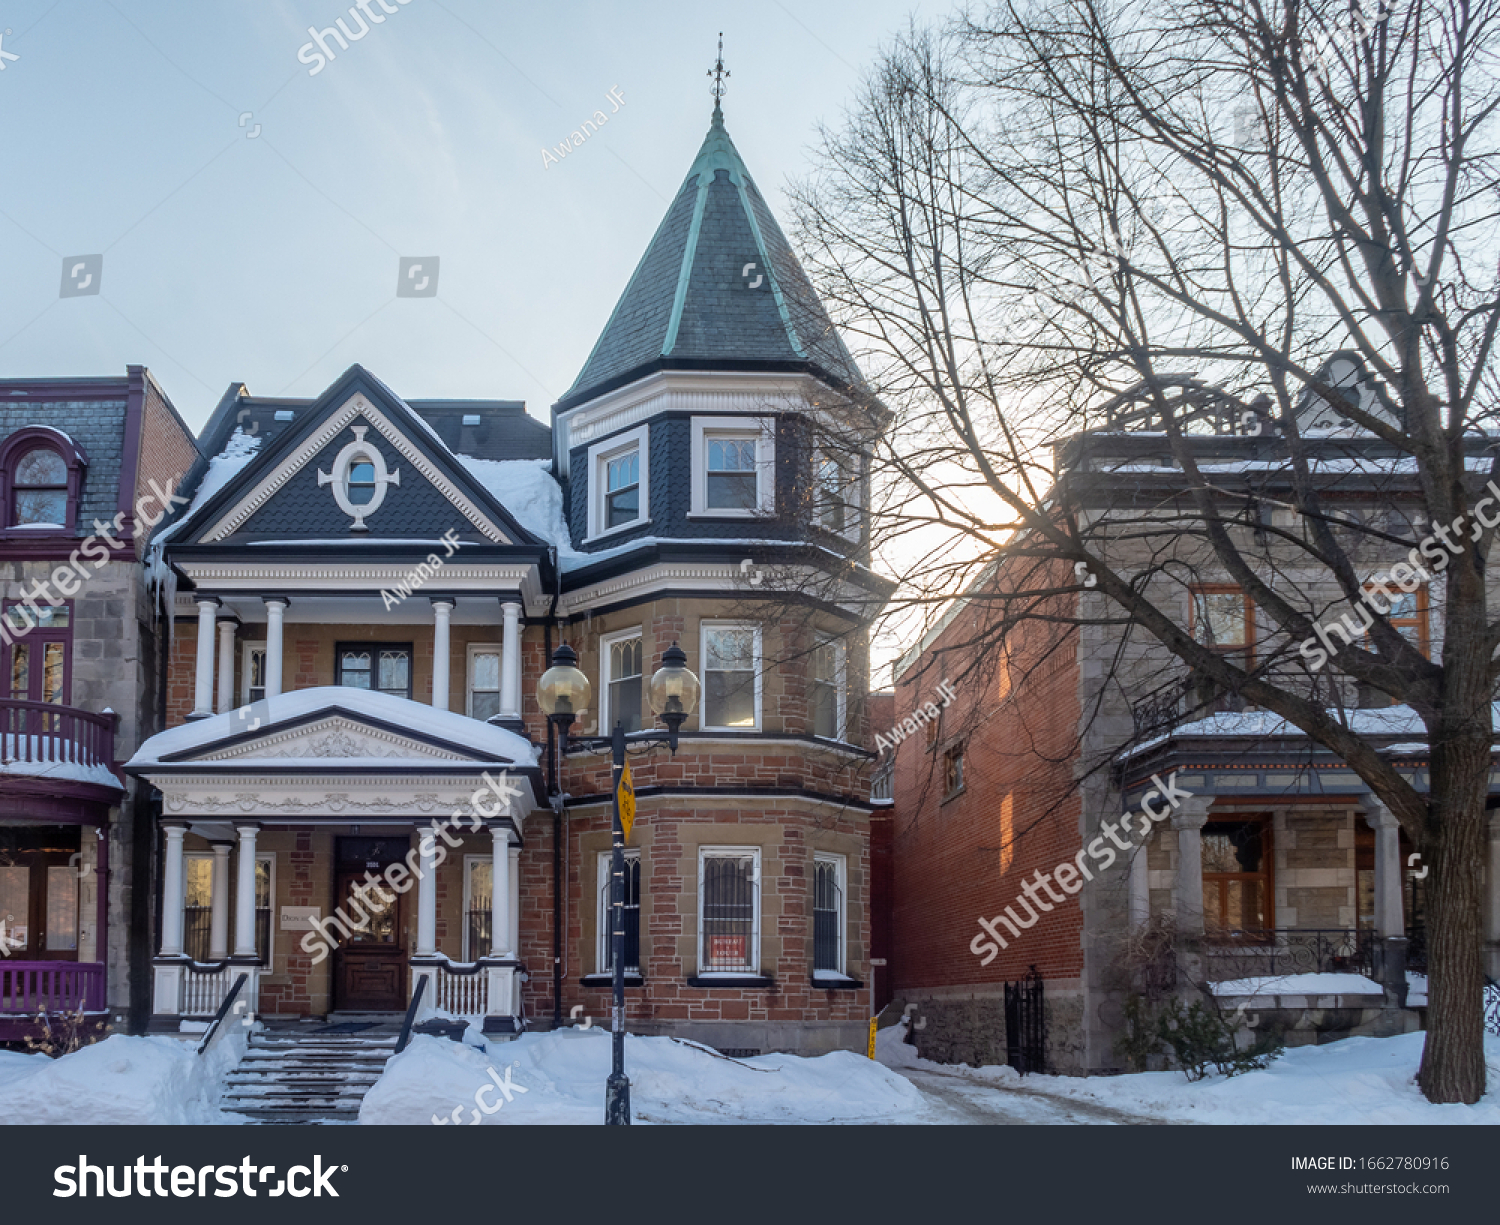 stock-photo-montreal-canada-february-hdr